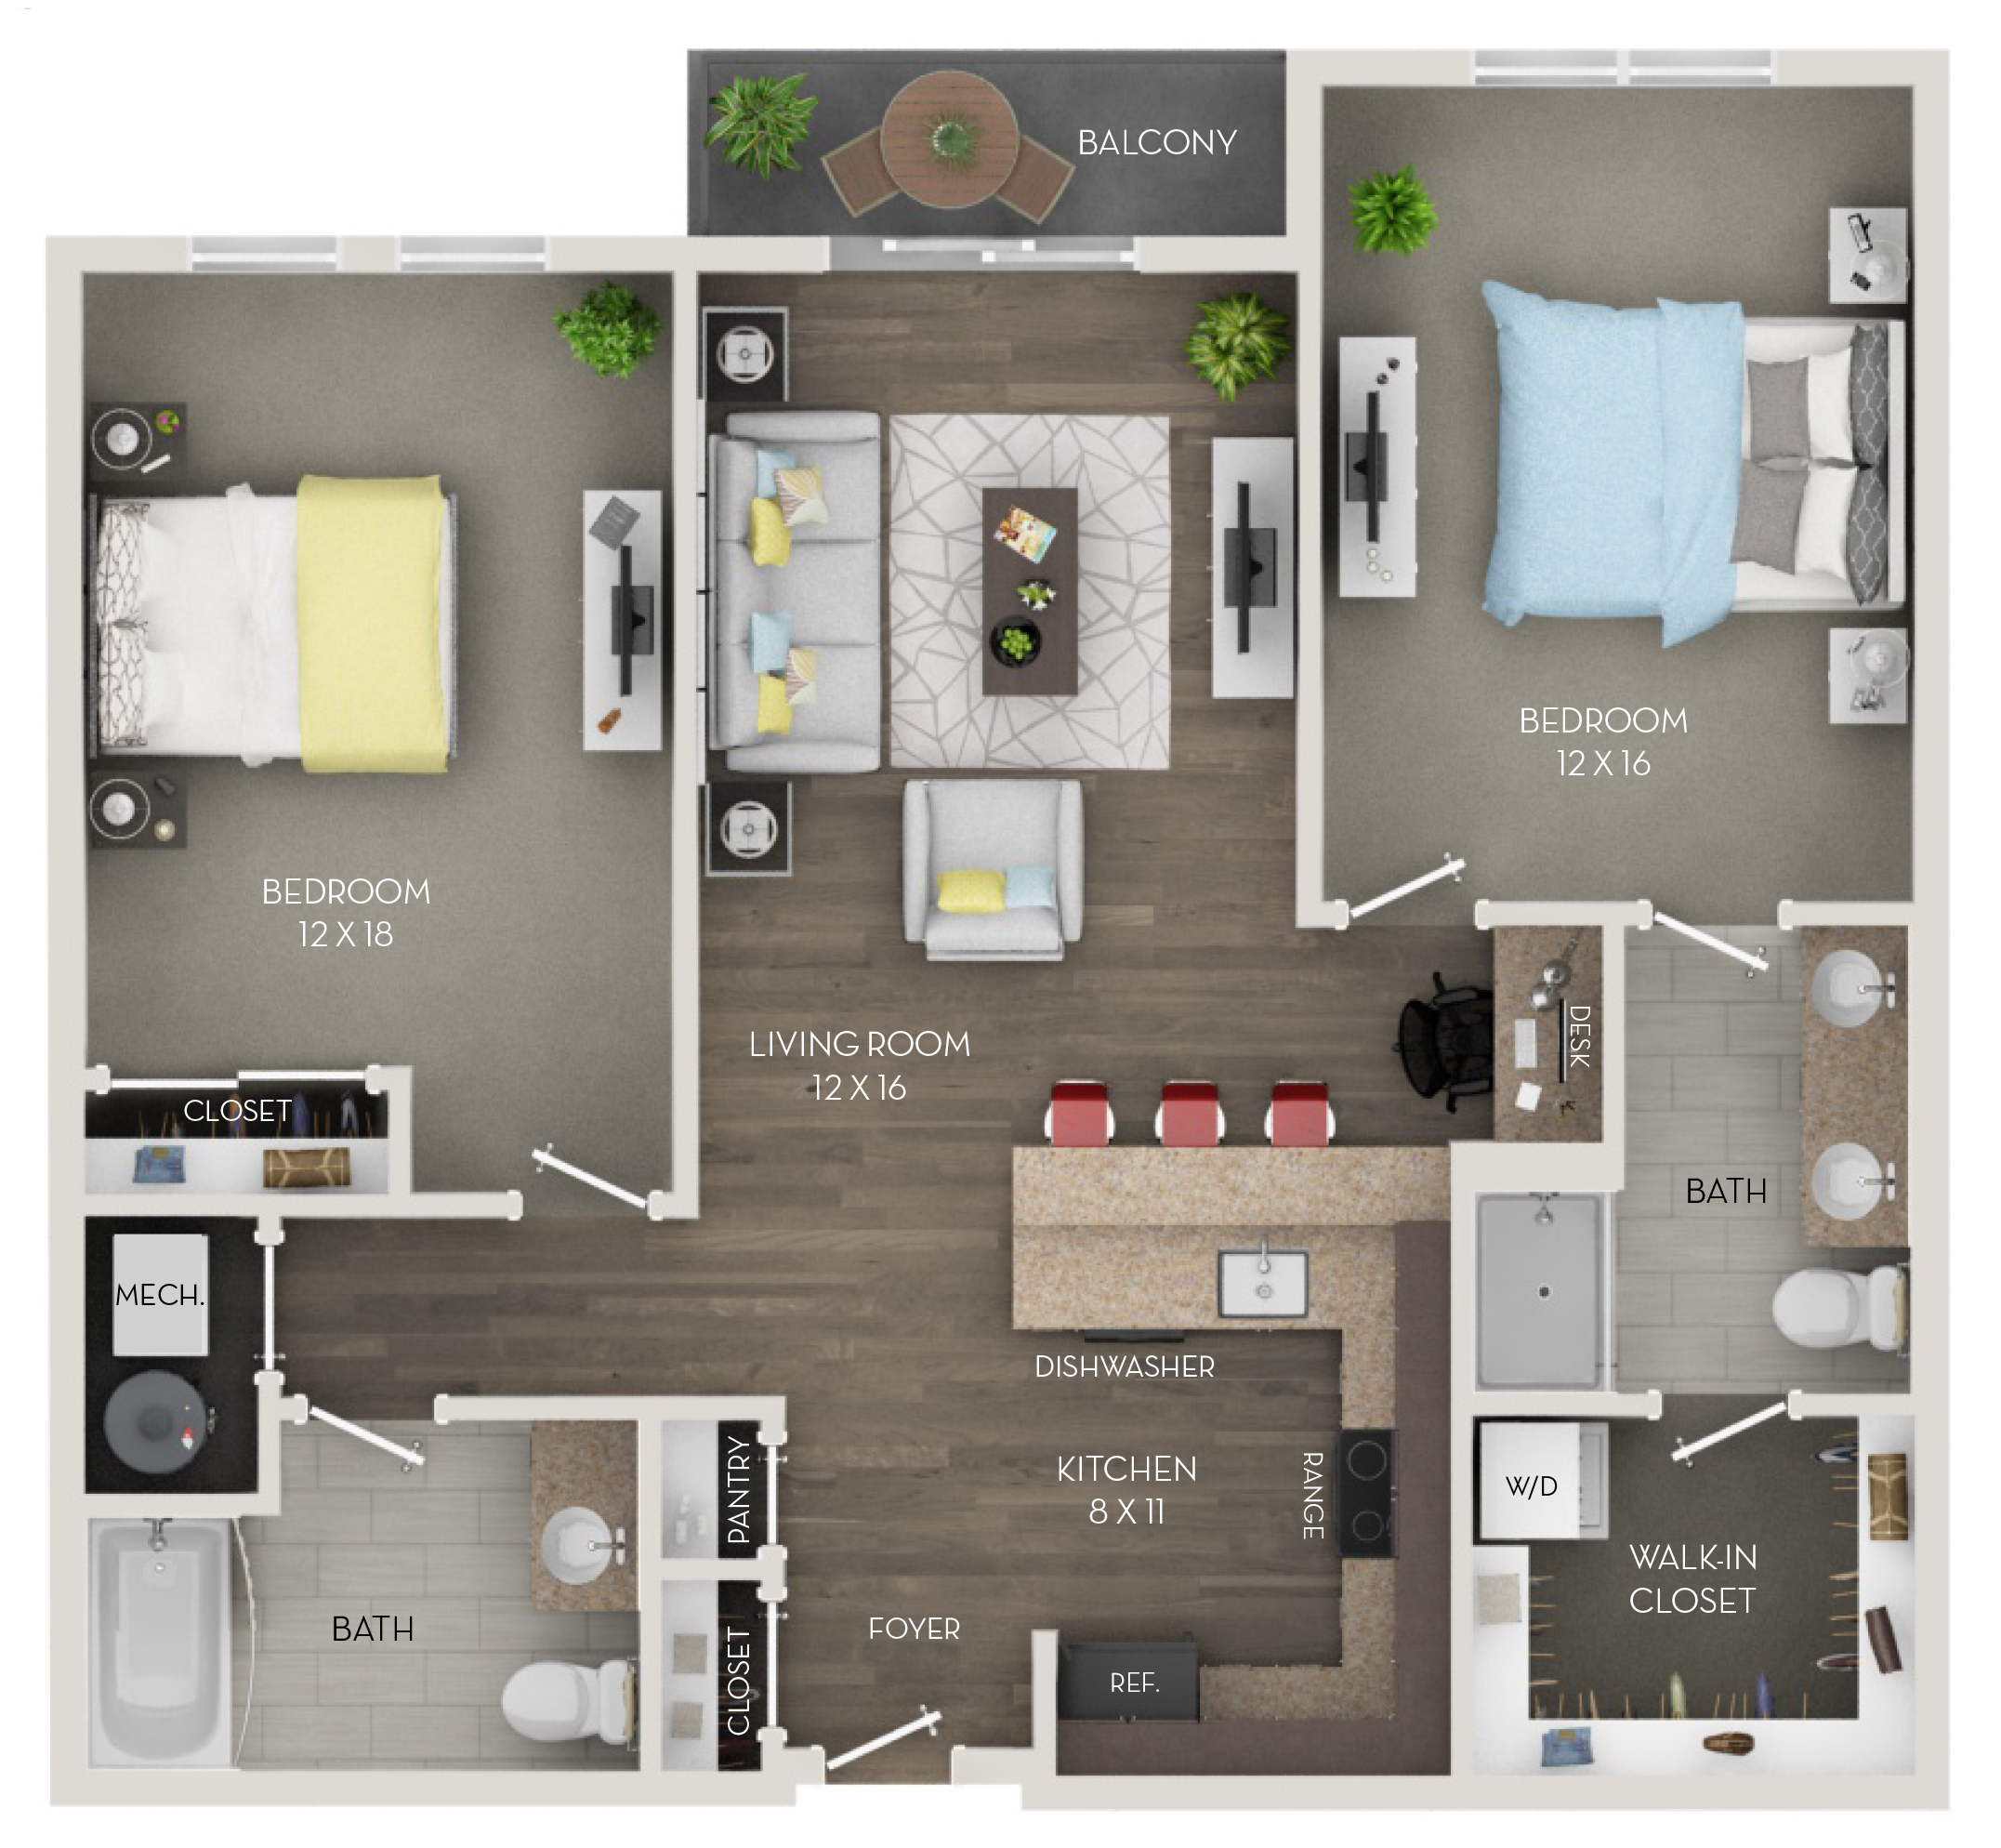 Two Bedroom, Two Bath (C1p)